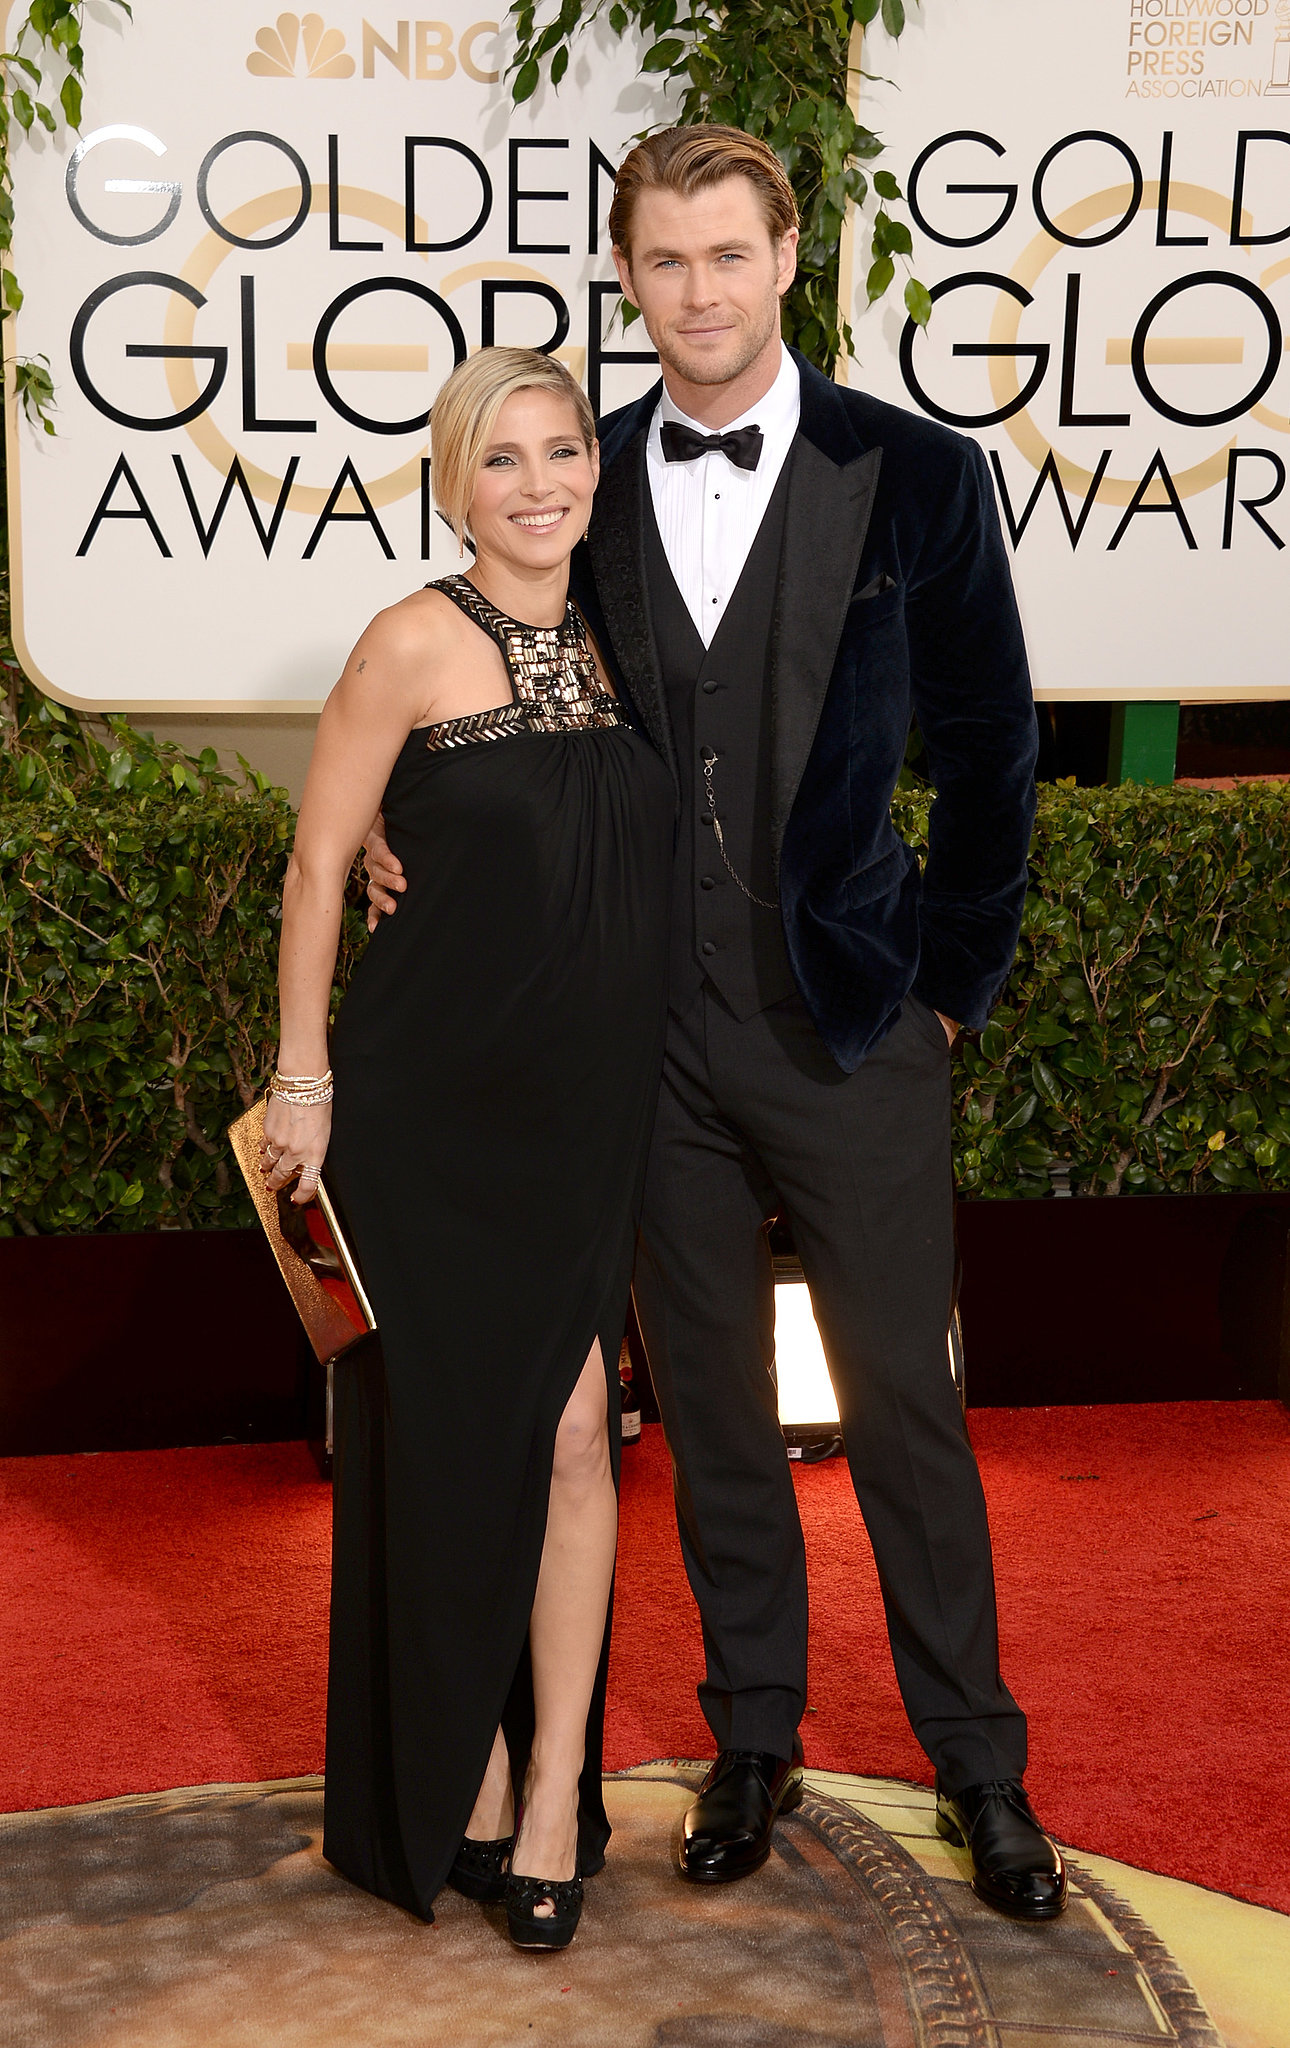 Chris Hemsworth kept his arm around Elsa Pataky at the Golden Globes.